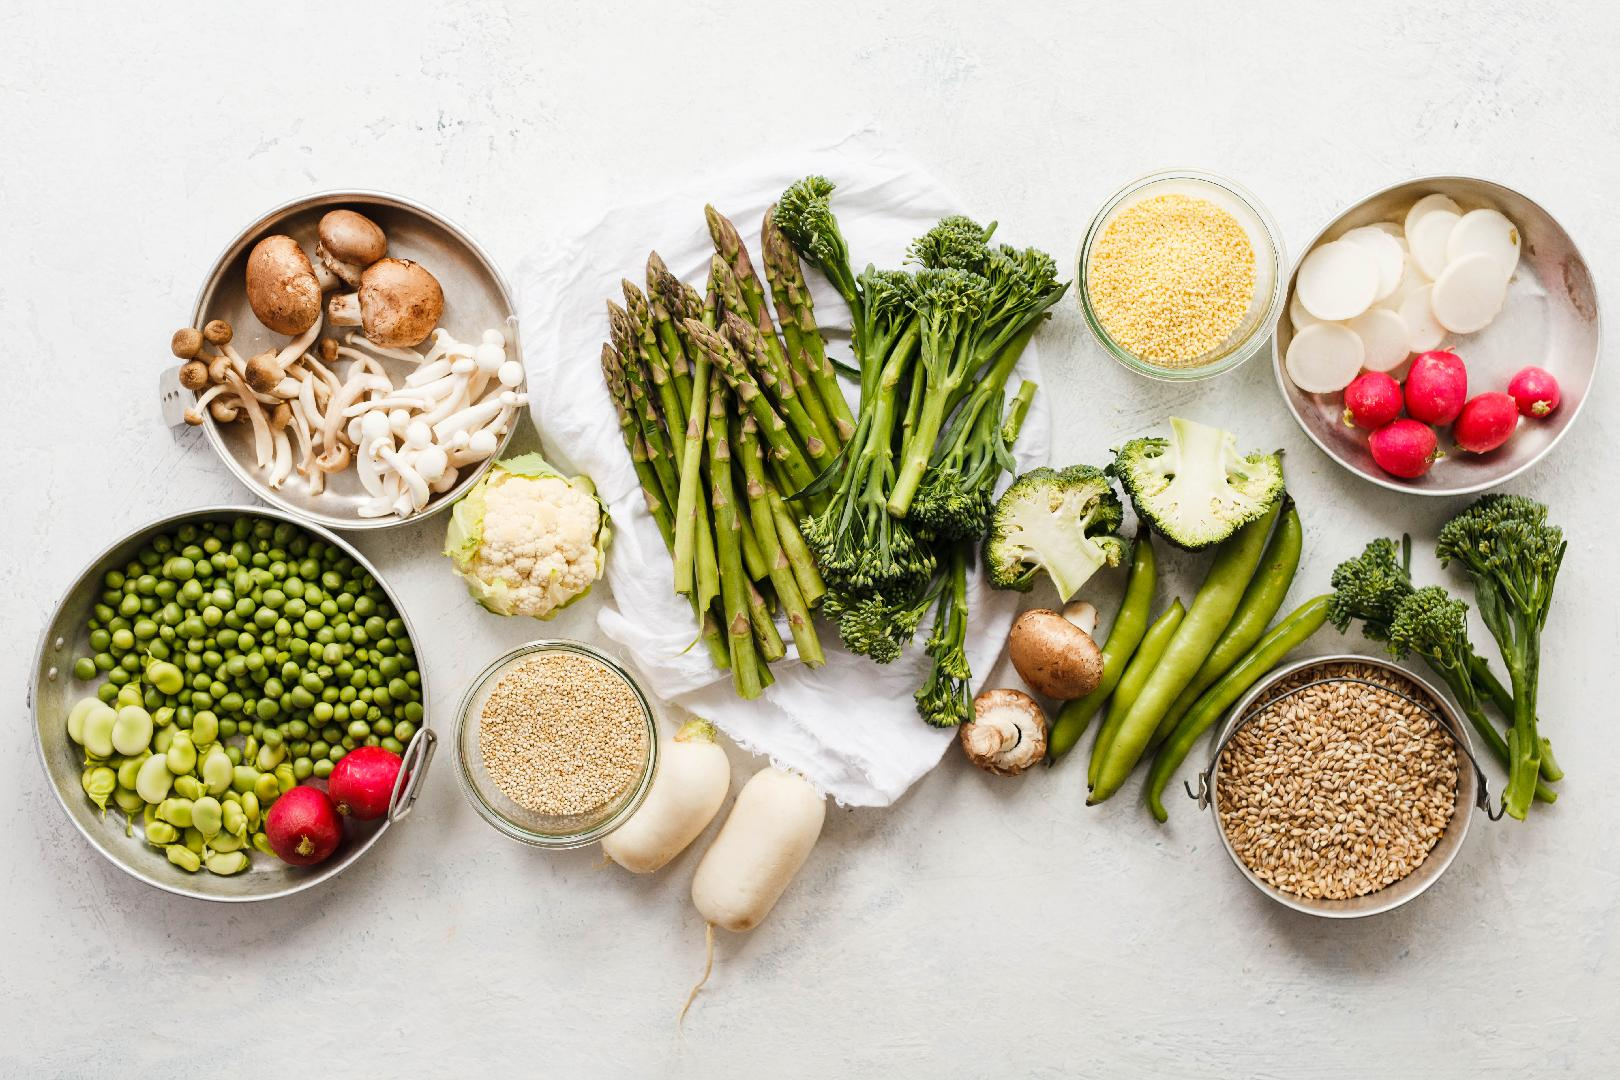 Canada's 2019 Dietary Guidelines Promote Plant-Based Diets - Cooking